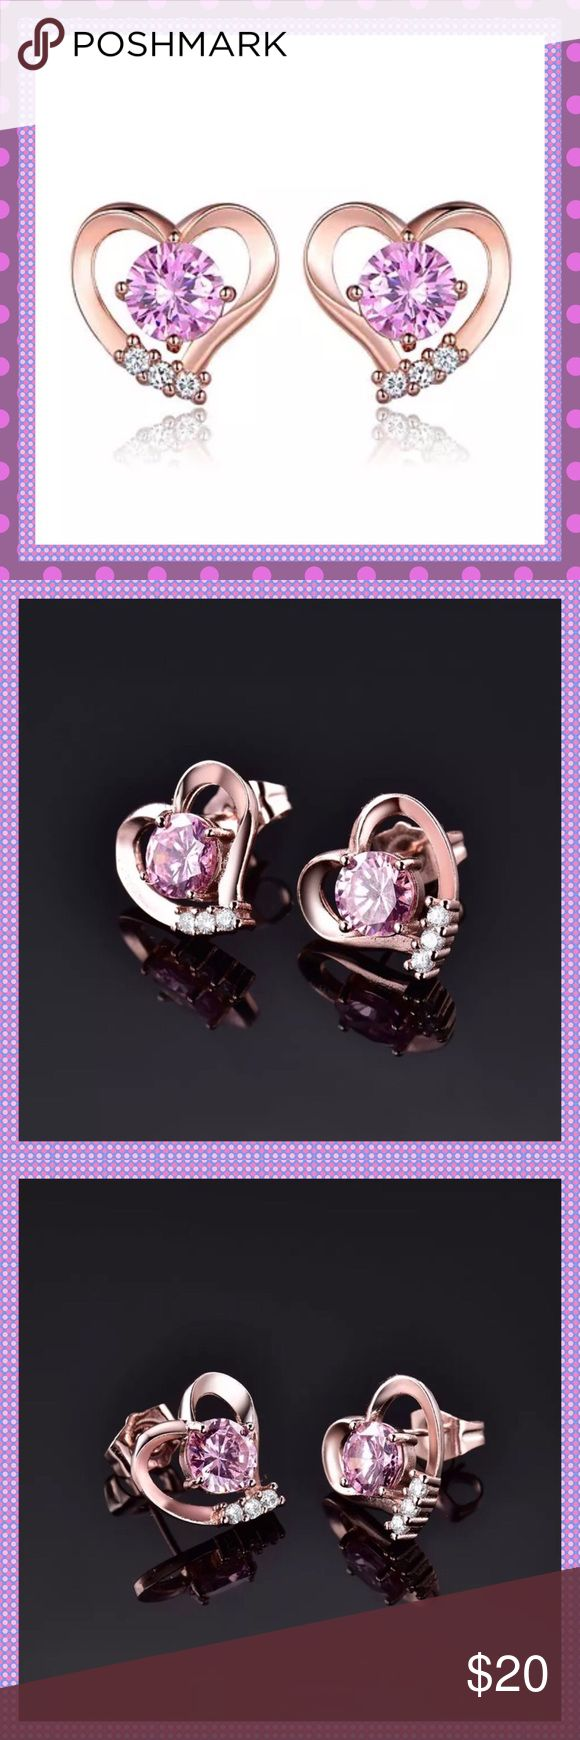 💓Rose Gold Hearts with Pink Topaz & CZ Earrings💓 💓WOW! 18K Rose Gold Filled Heart Shaped Pierced Stud Earrings with a 1.28 Carat Round Brilliant Cut Pink Topaz and Lab Created Diamonds, Gram Weight: 3.3 These are stunning, I had to keep one pair for my jewelry box!!💓COMES IN JEWELRY BOX💓PRICE IS FIRM💓 Boutique Jewelry Earrings